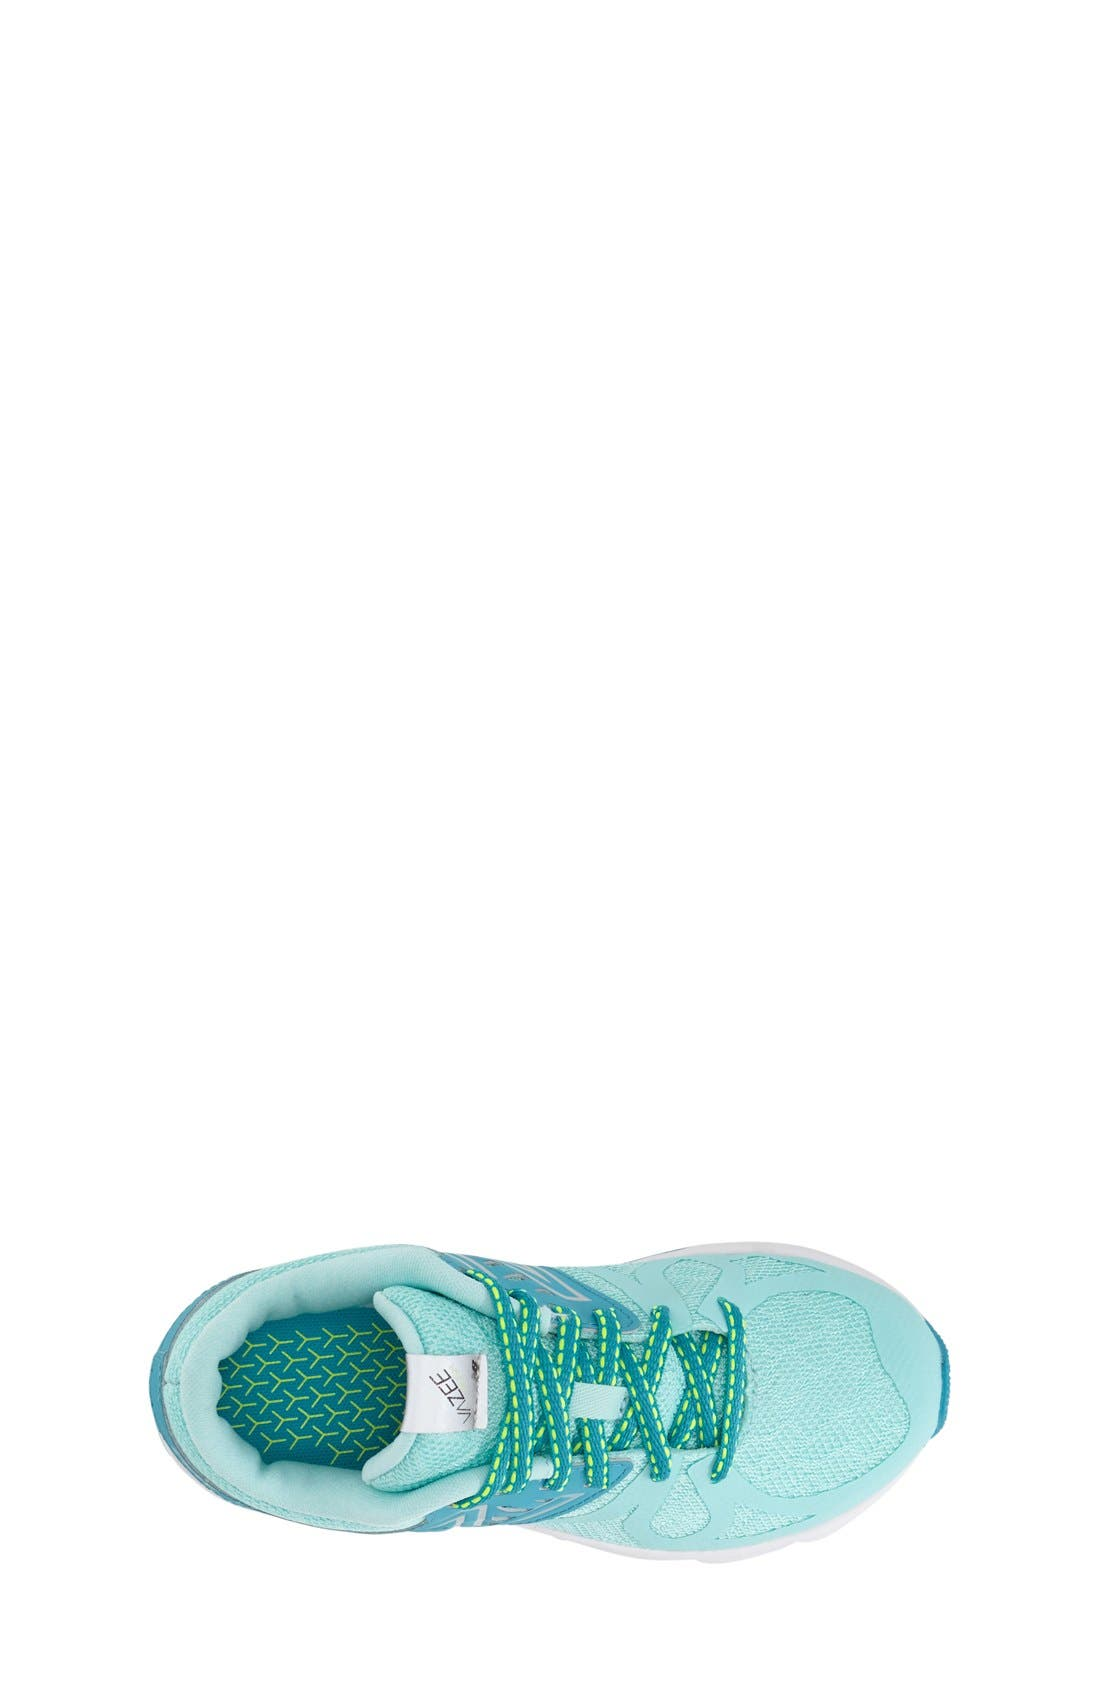 '200 Rush Vazee' Athletic Shoe,                             Alternate thumbnail 3, color,                             SEA GLASS